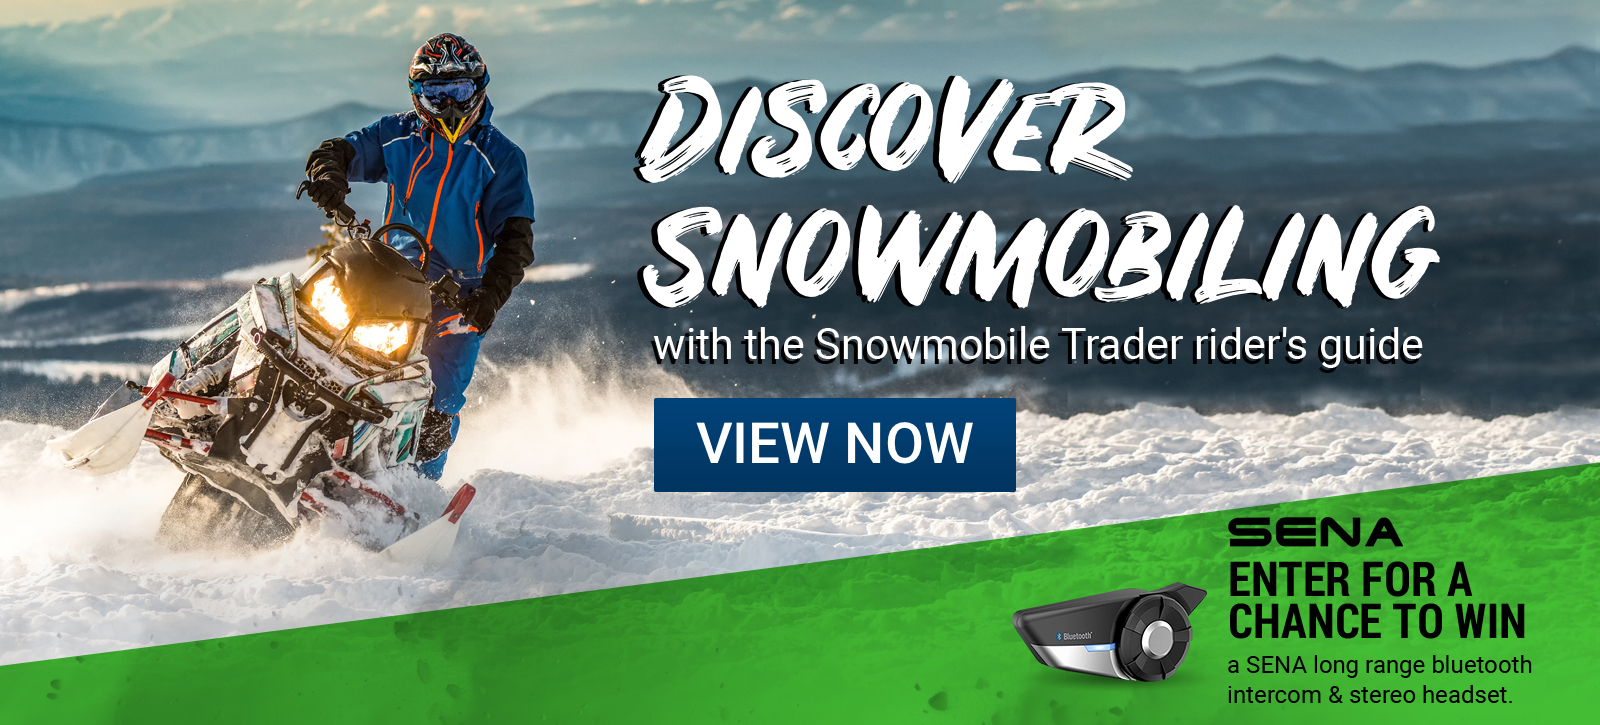 Discover Snowmobiling